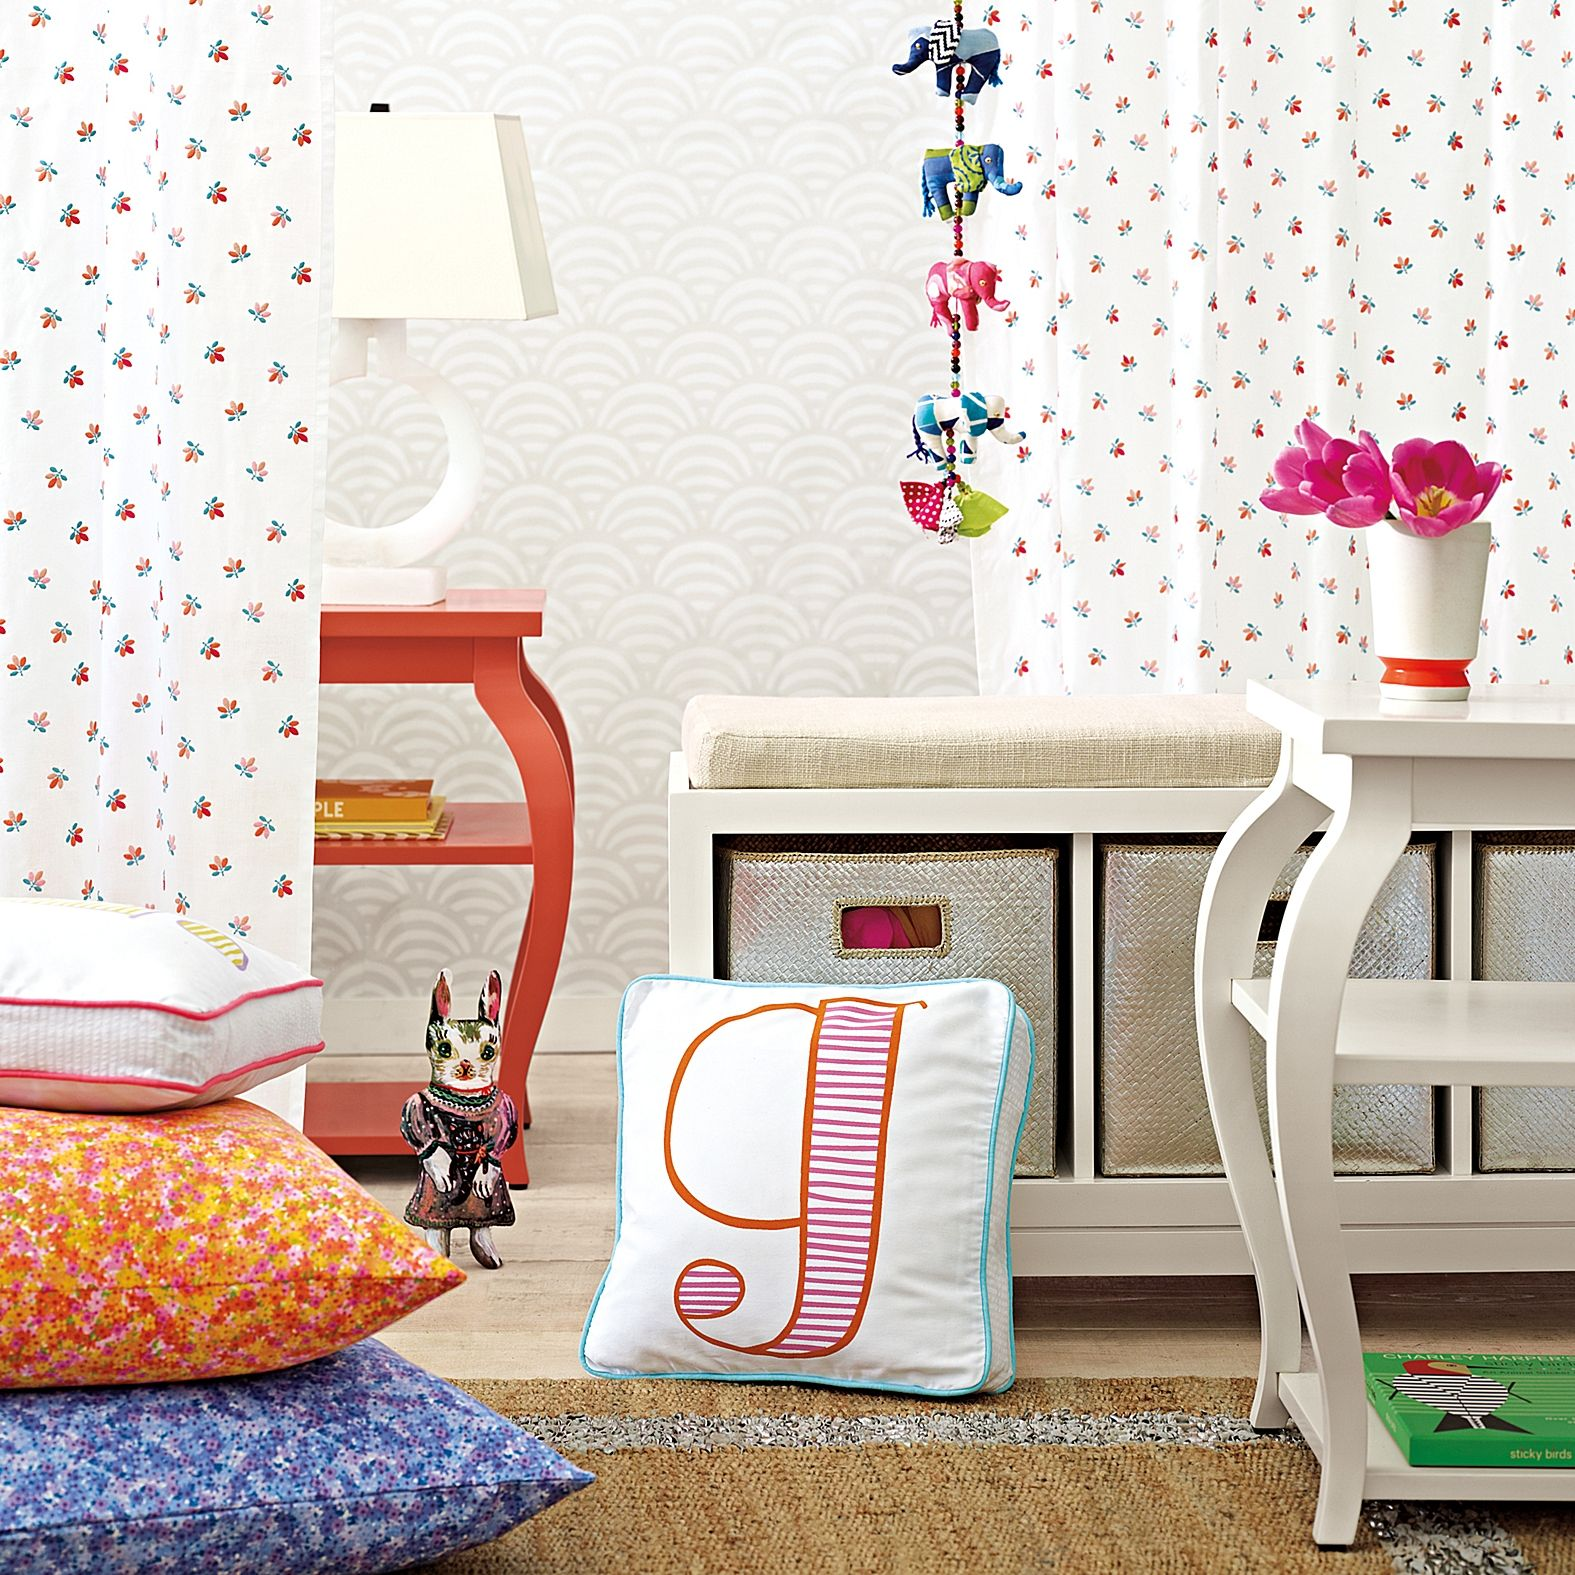 Colorful - Kids Bedroom - Playroom (With Images)